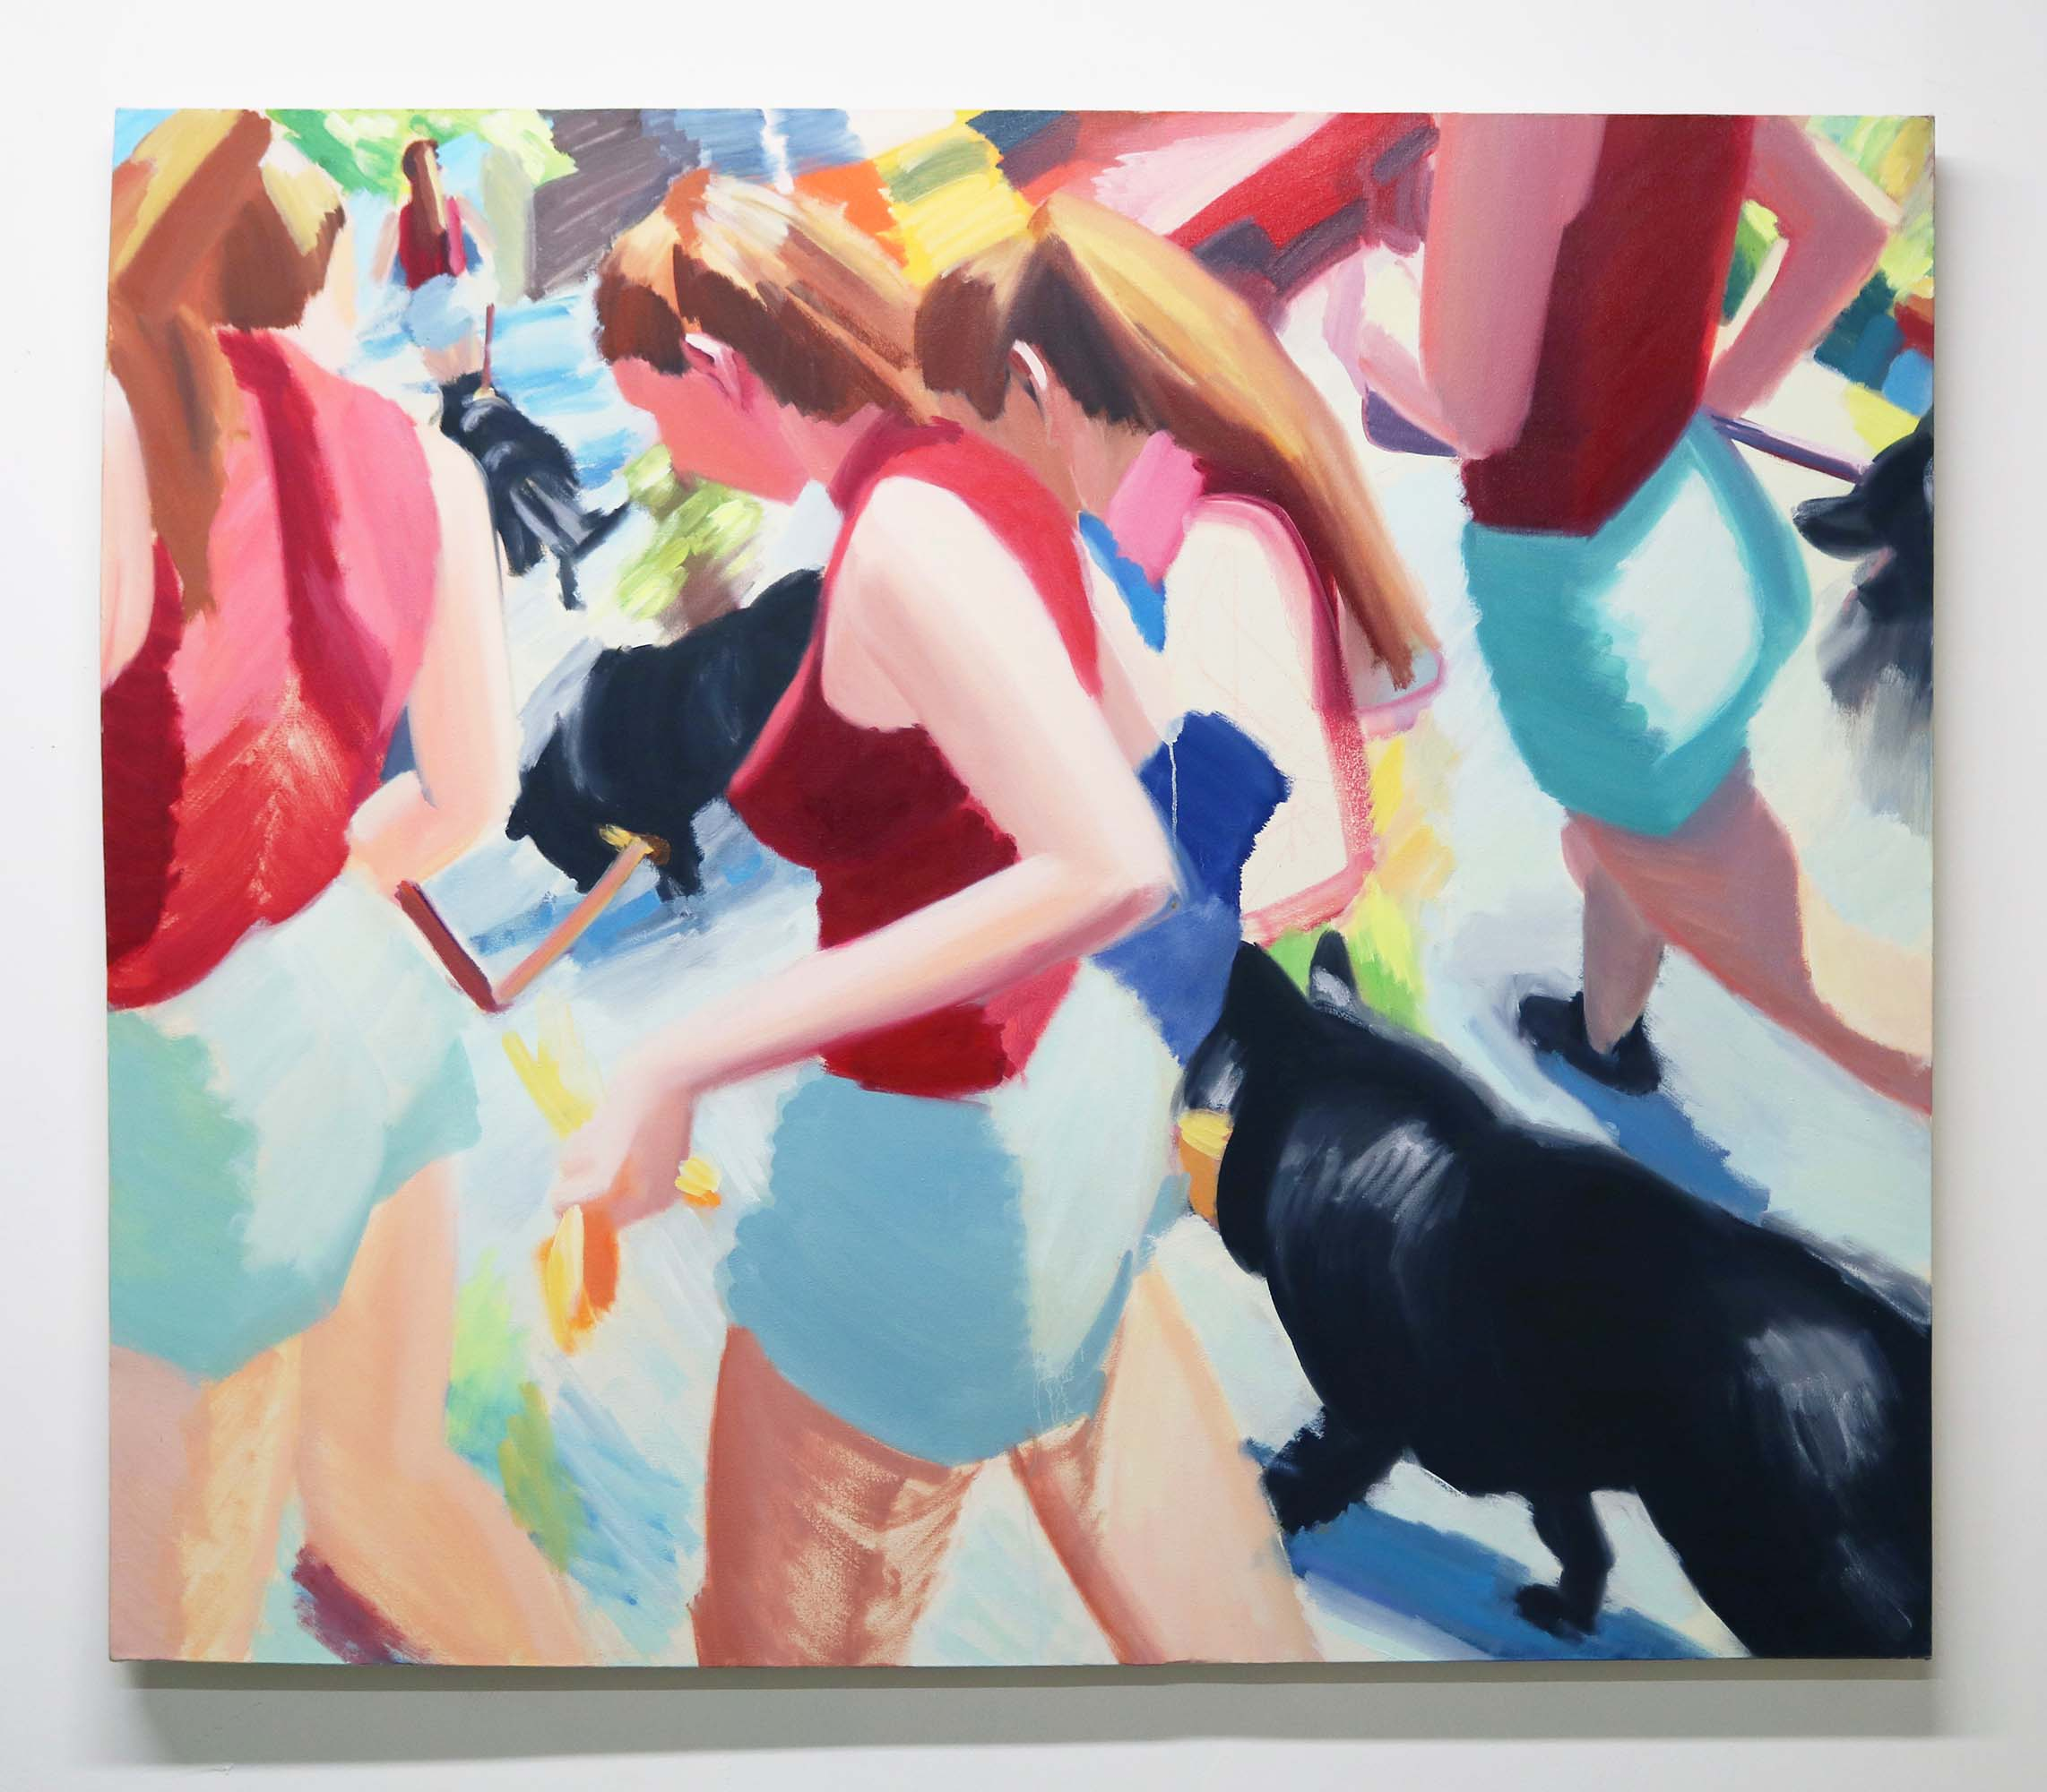 Grace Mattingly, Kirby Dog-Walking on a Hot Day in June, Oil on canvas, 52